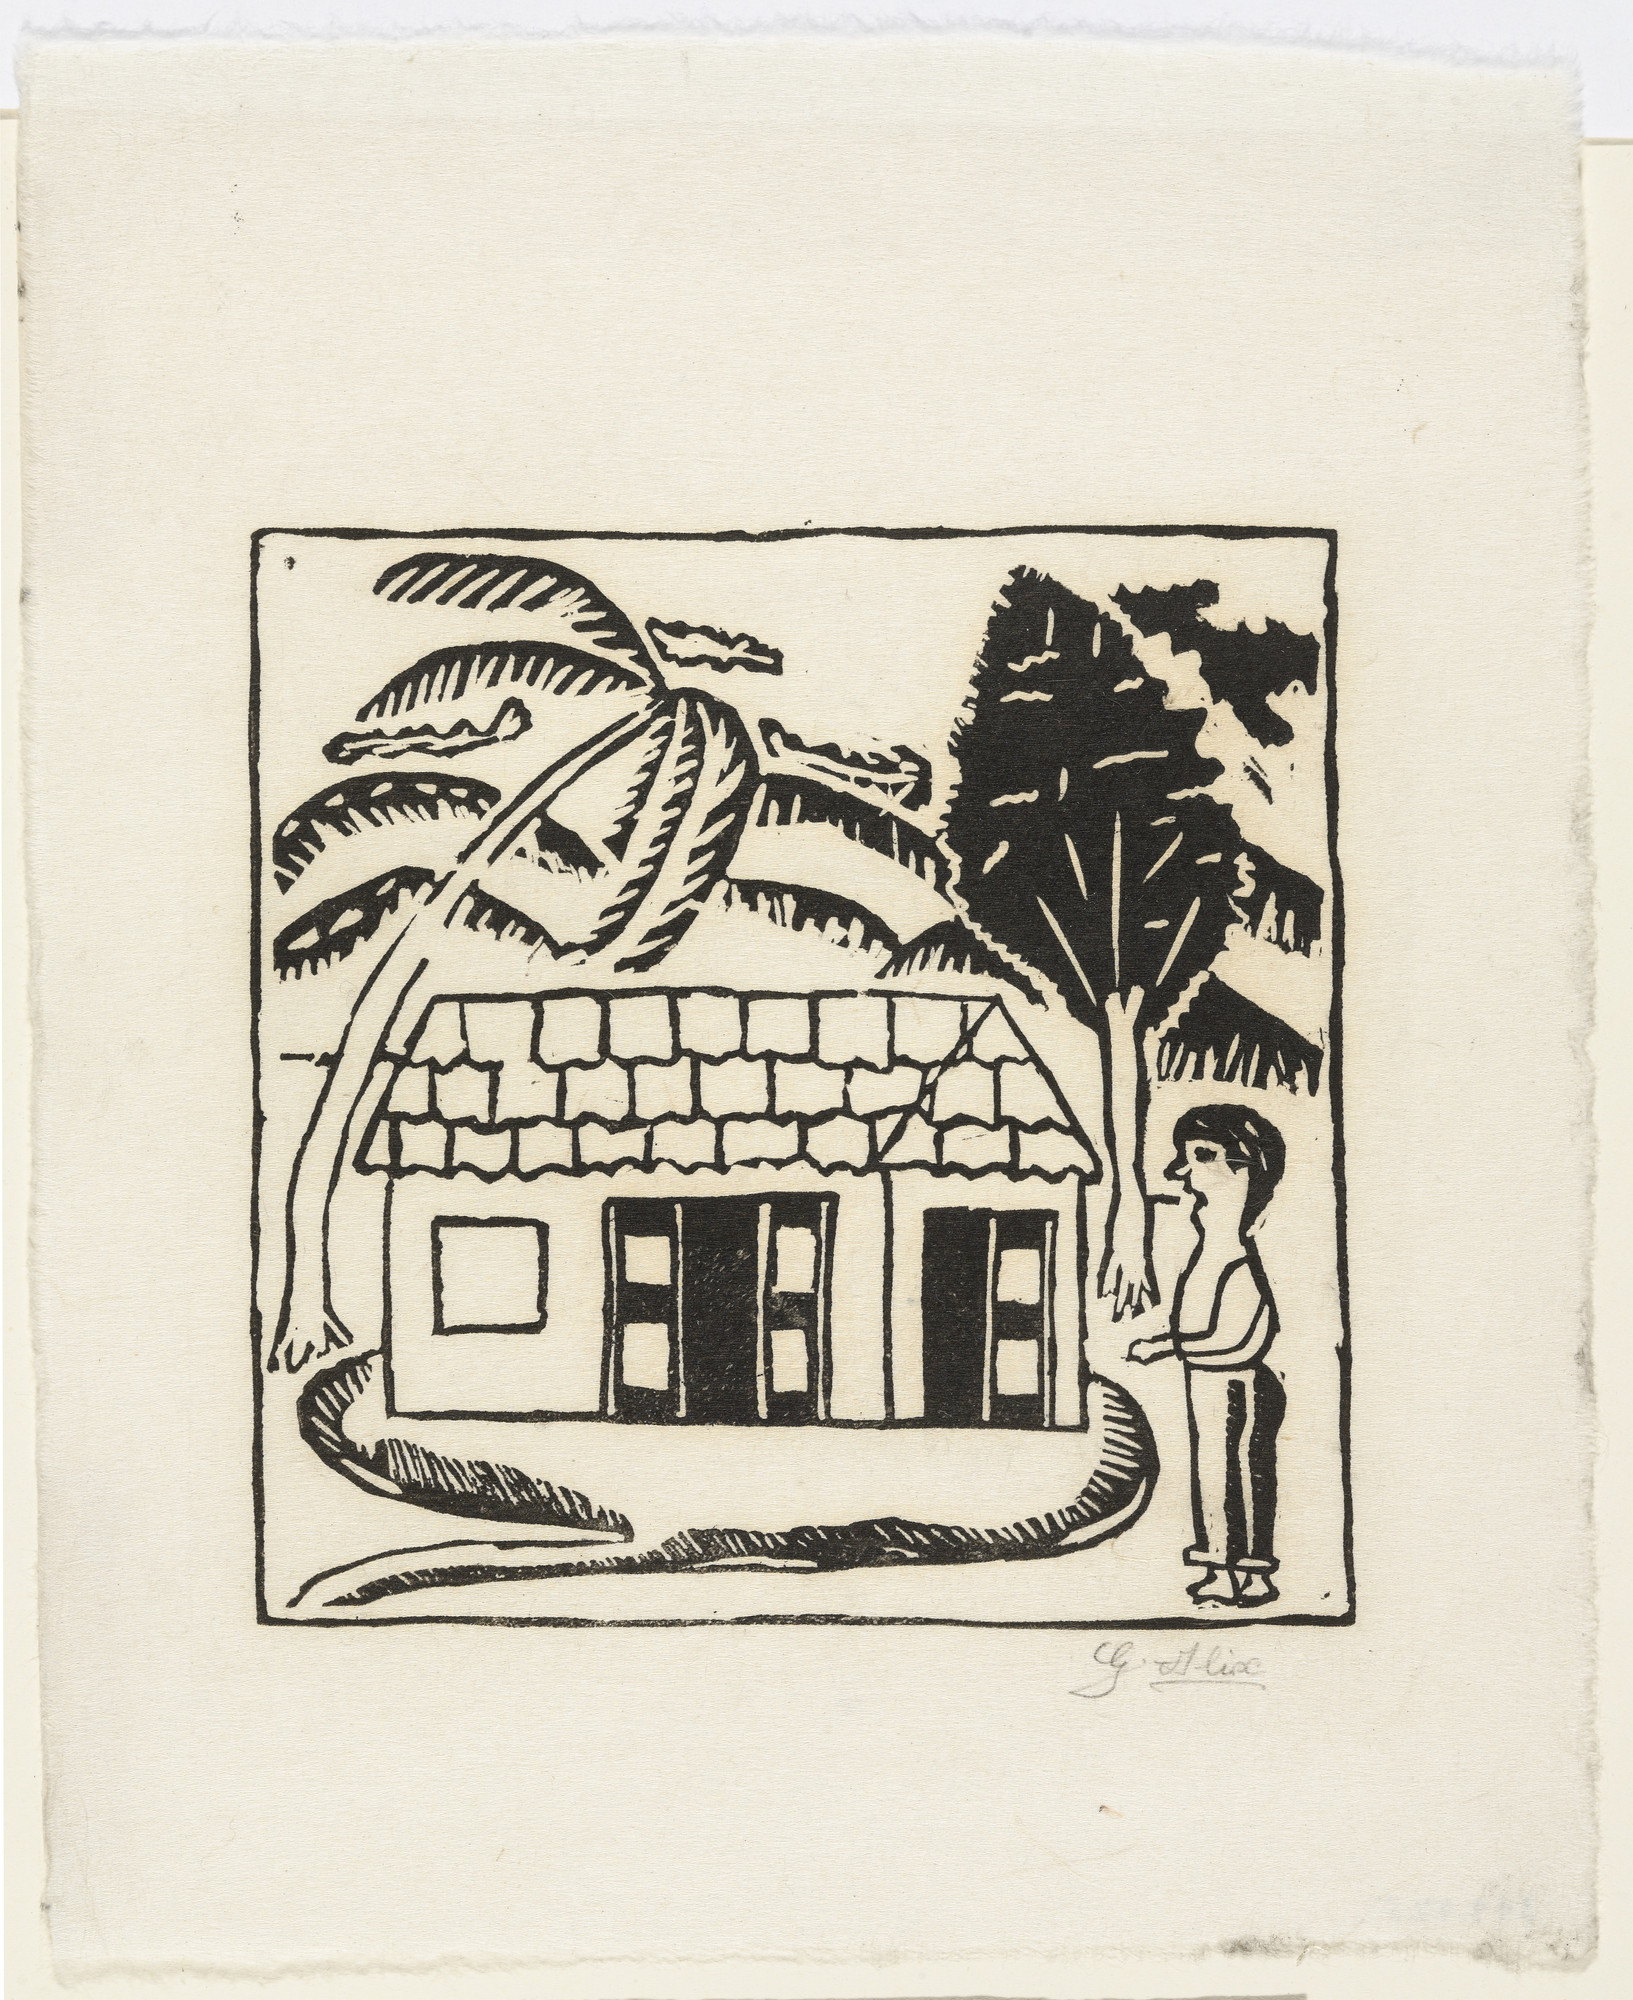 Gabriel Alix. Untitled from 10 Original Woodcuts Signed by the Popular Painters of Haiti (10 Gravures Originales signées par les peintres populaires d'Haiti). 1947